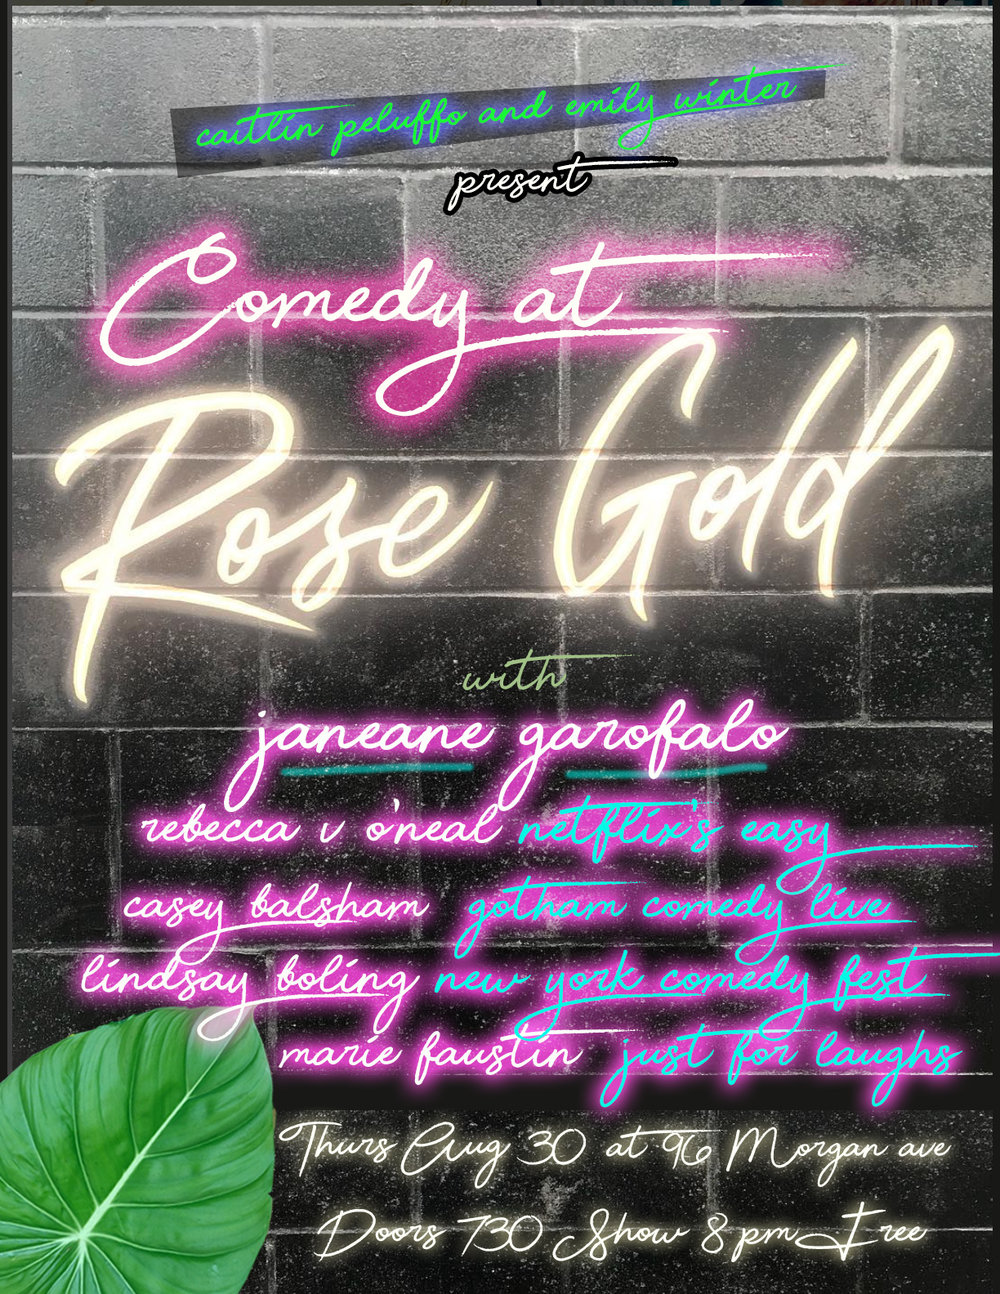 comedy-at-rose-gold-poster-new-aug.jpg